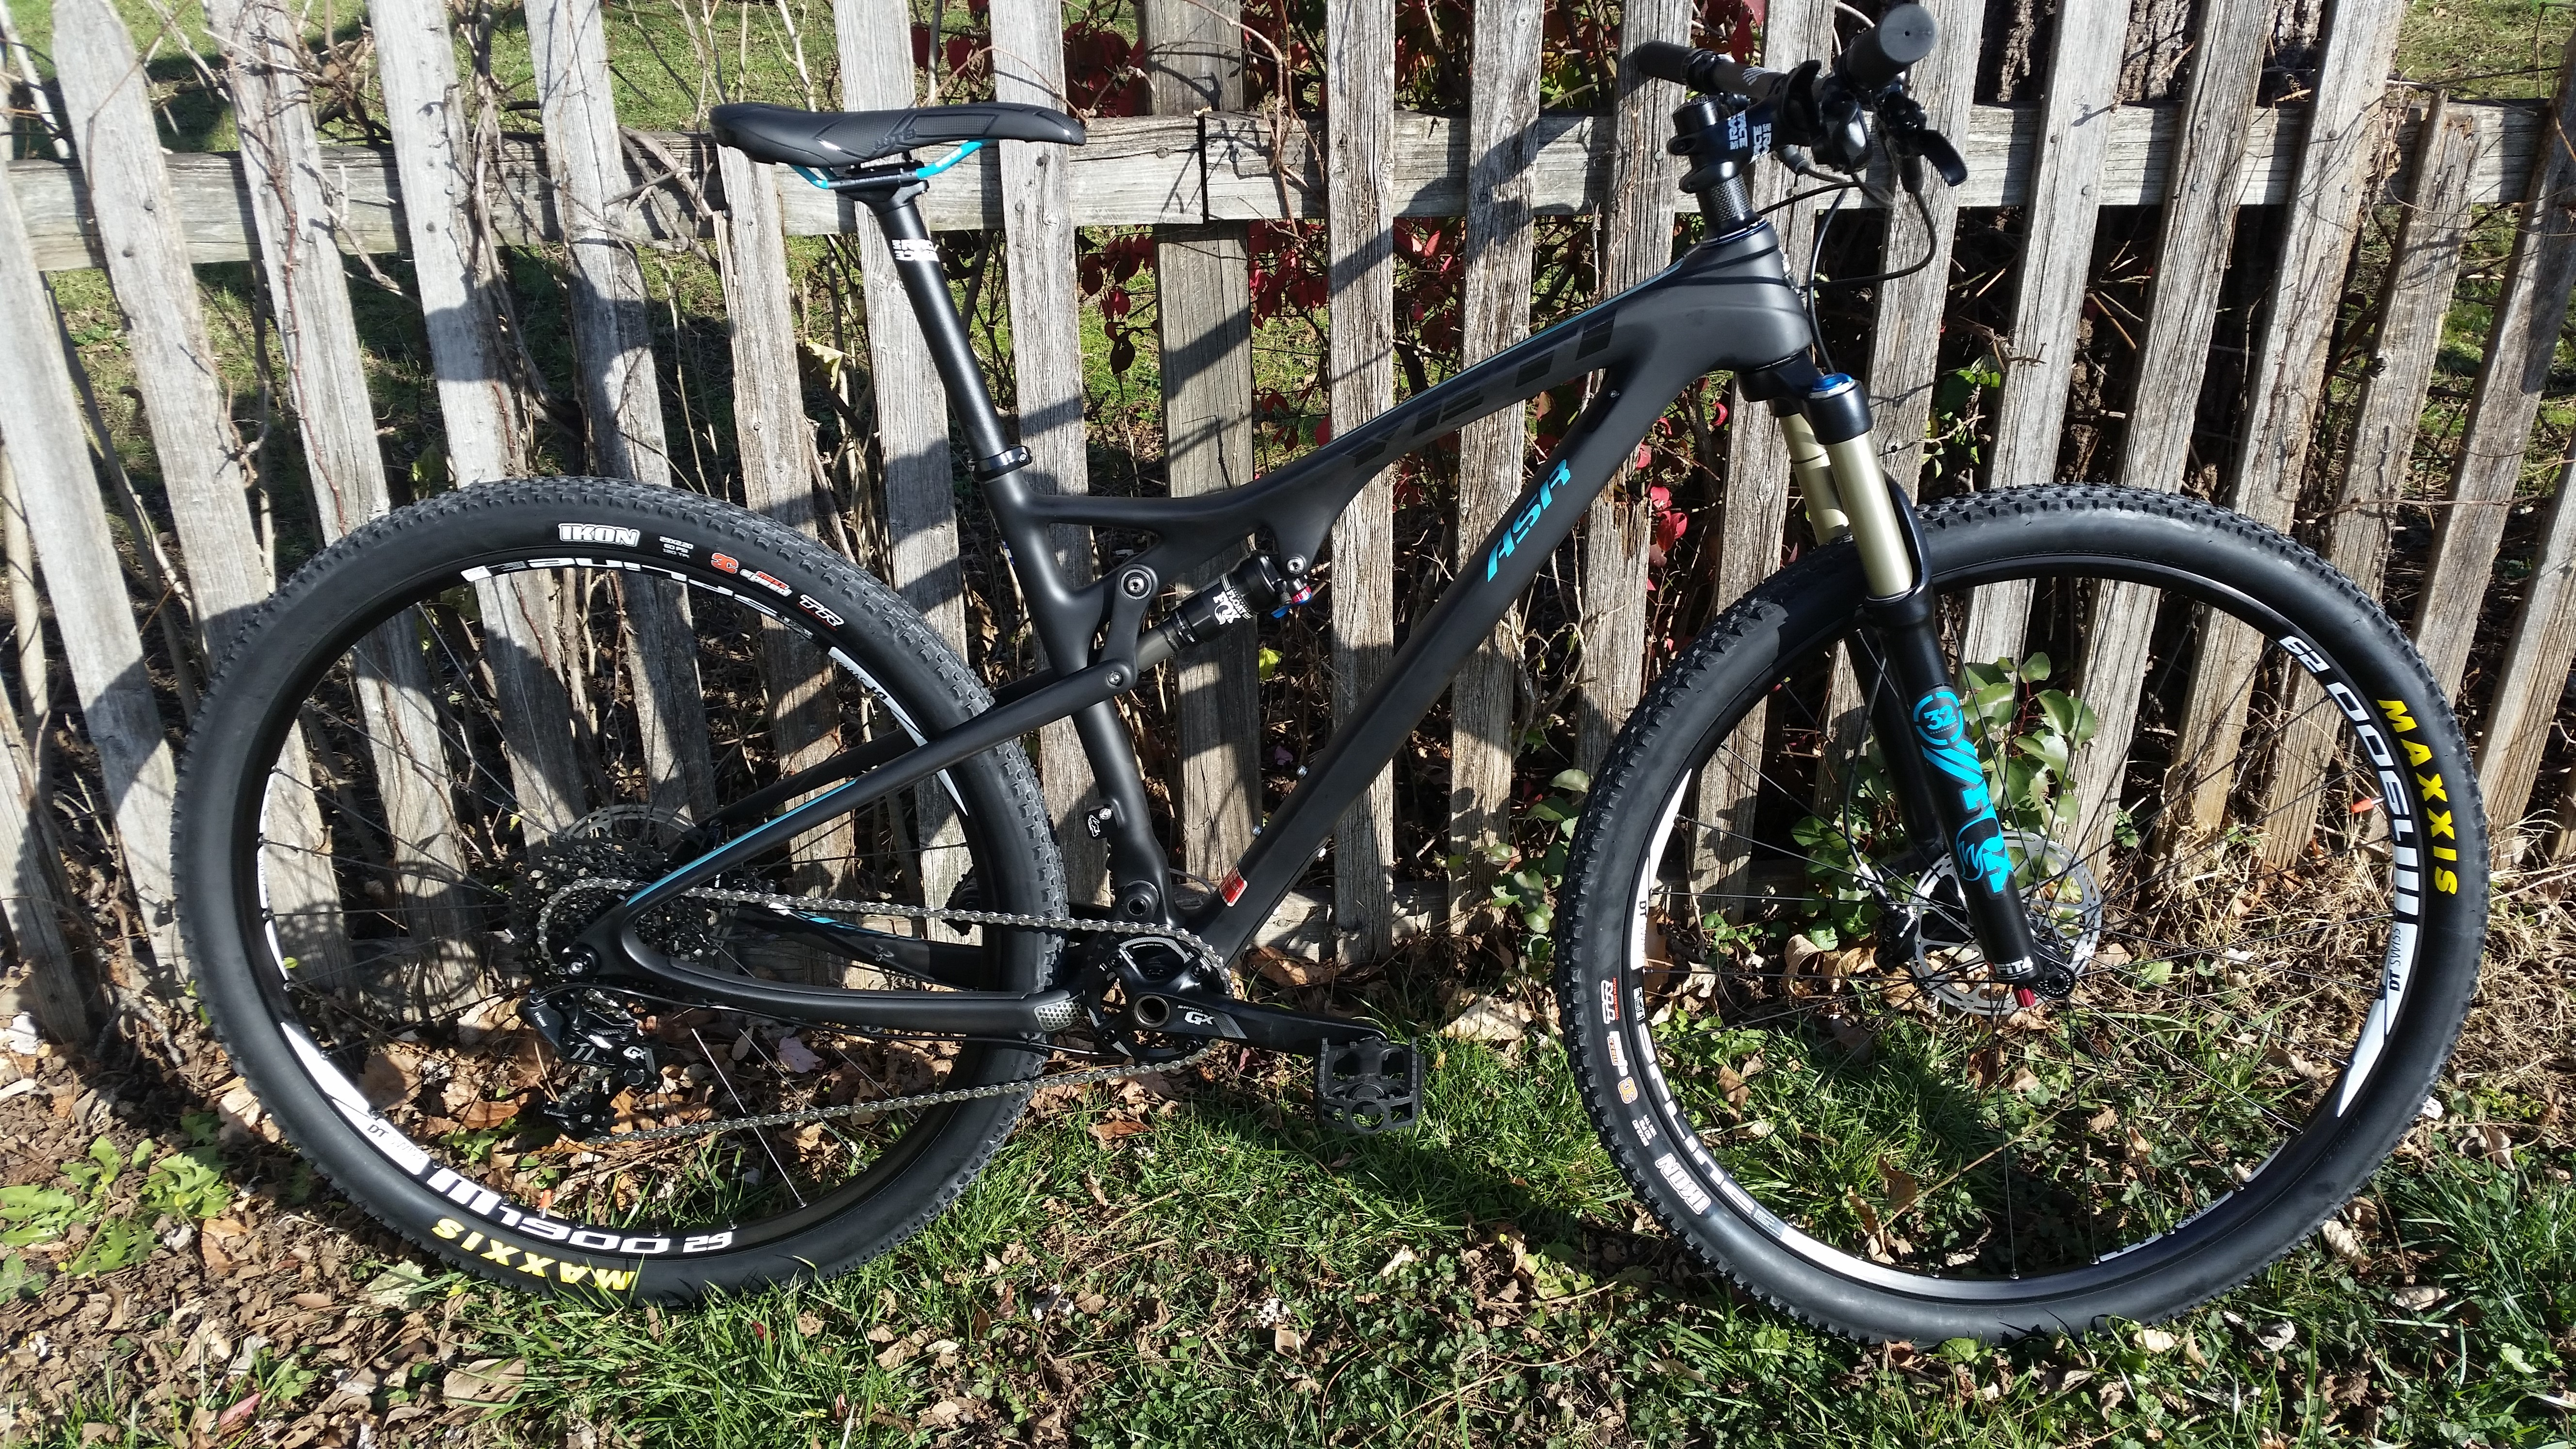 A Yeti Has Been Spotted In These Parts Gettysburg Bicycle